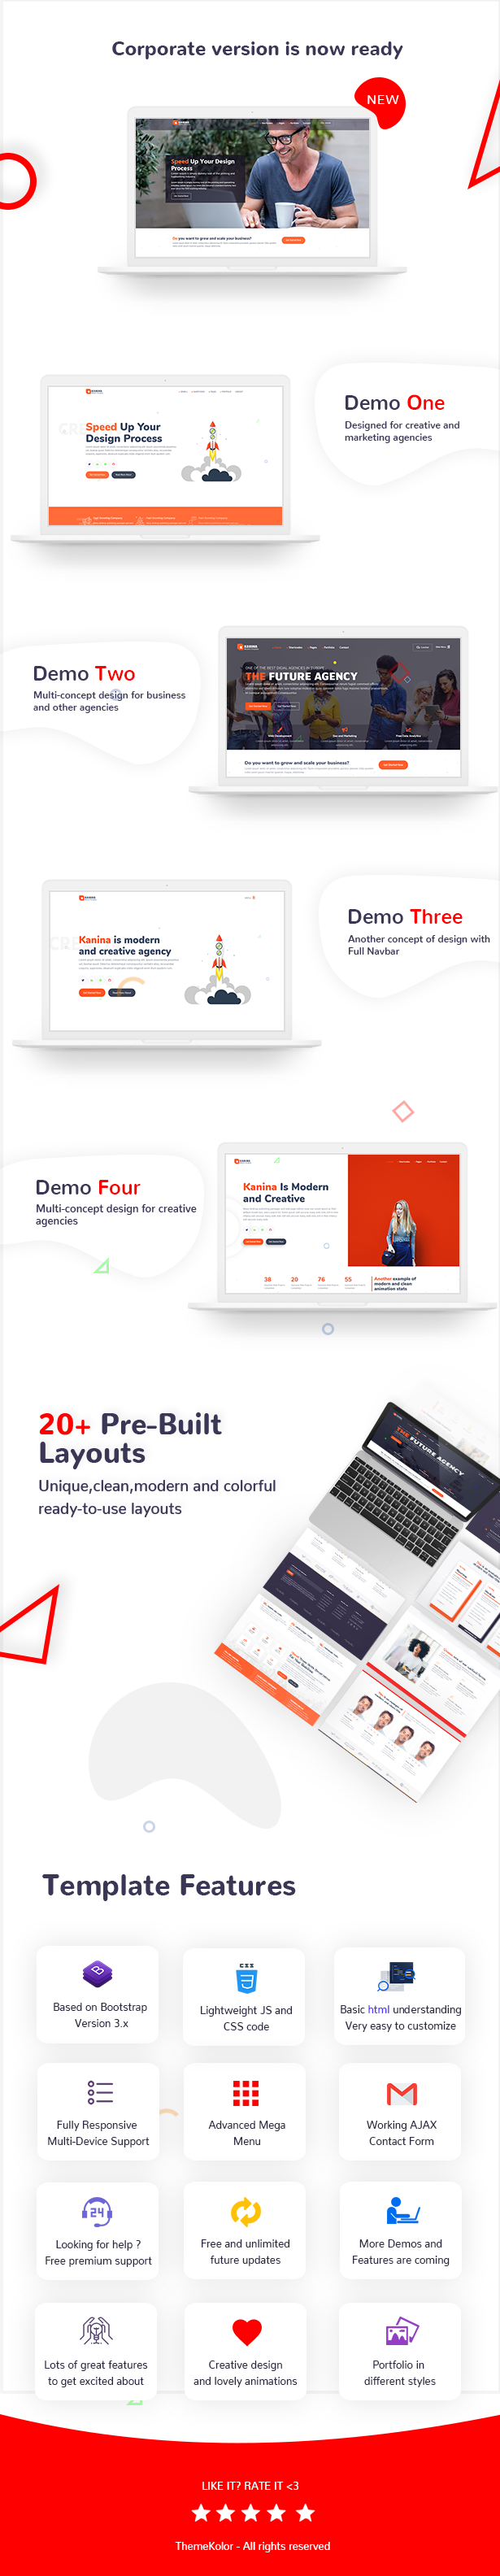 Kanina - Multipurpose Business and Creative Agency HTML5 Template - 2